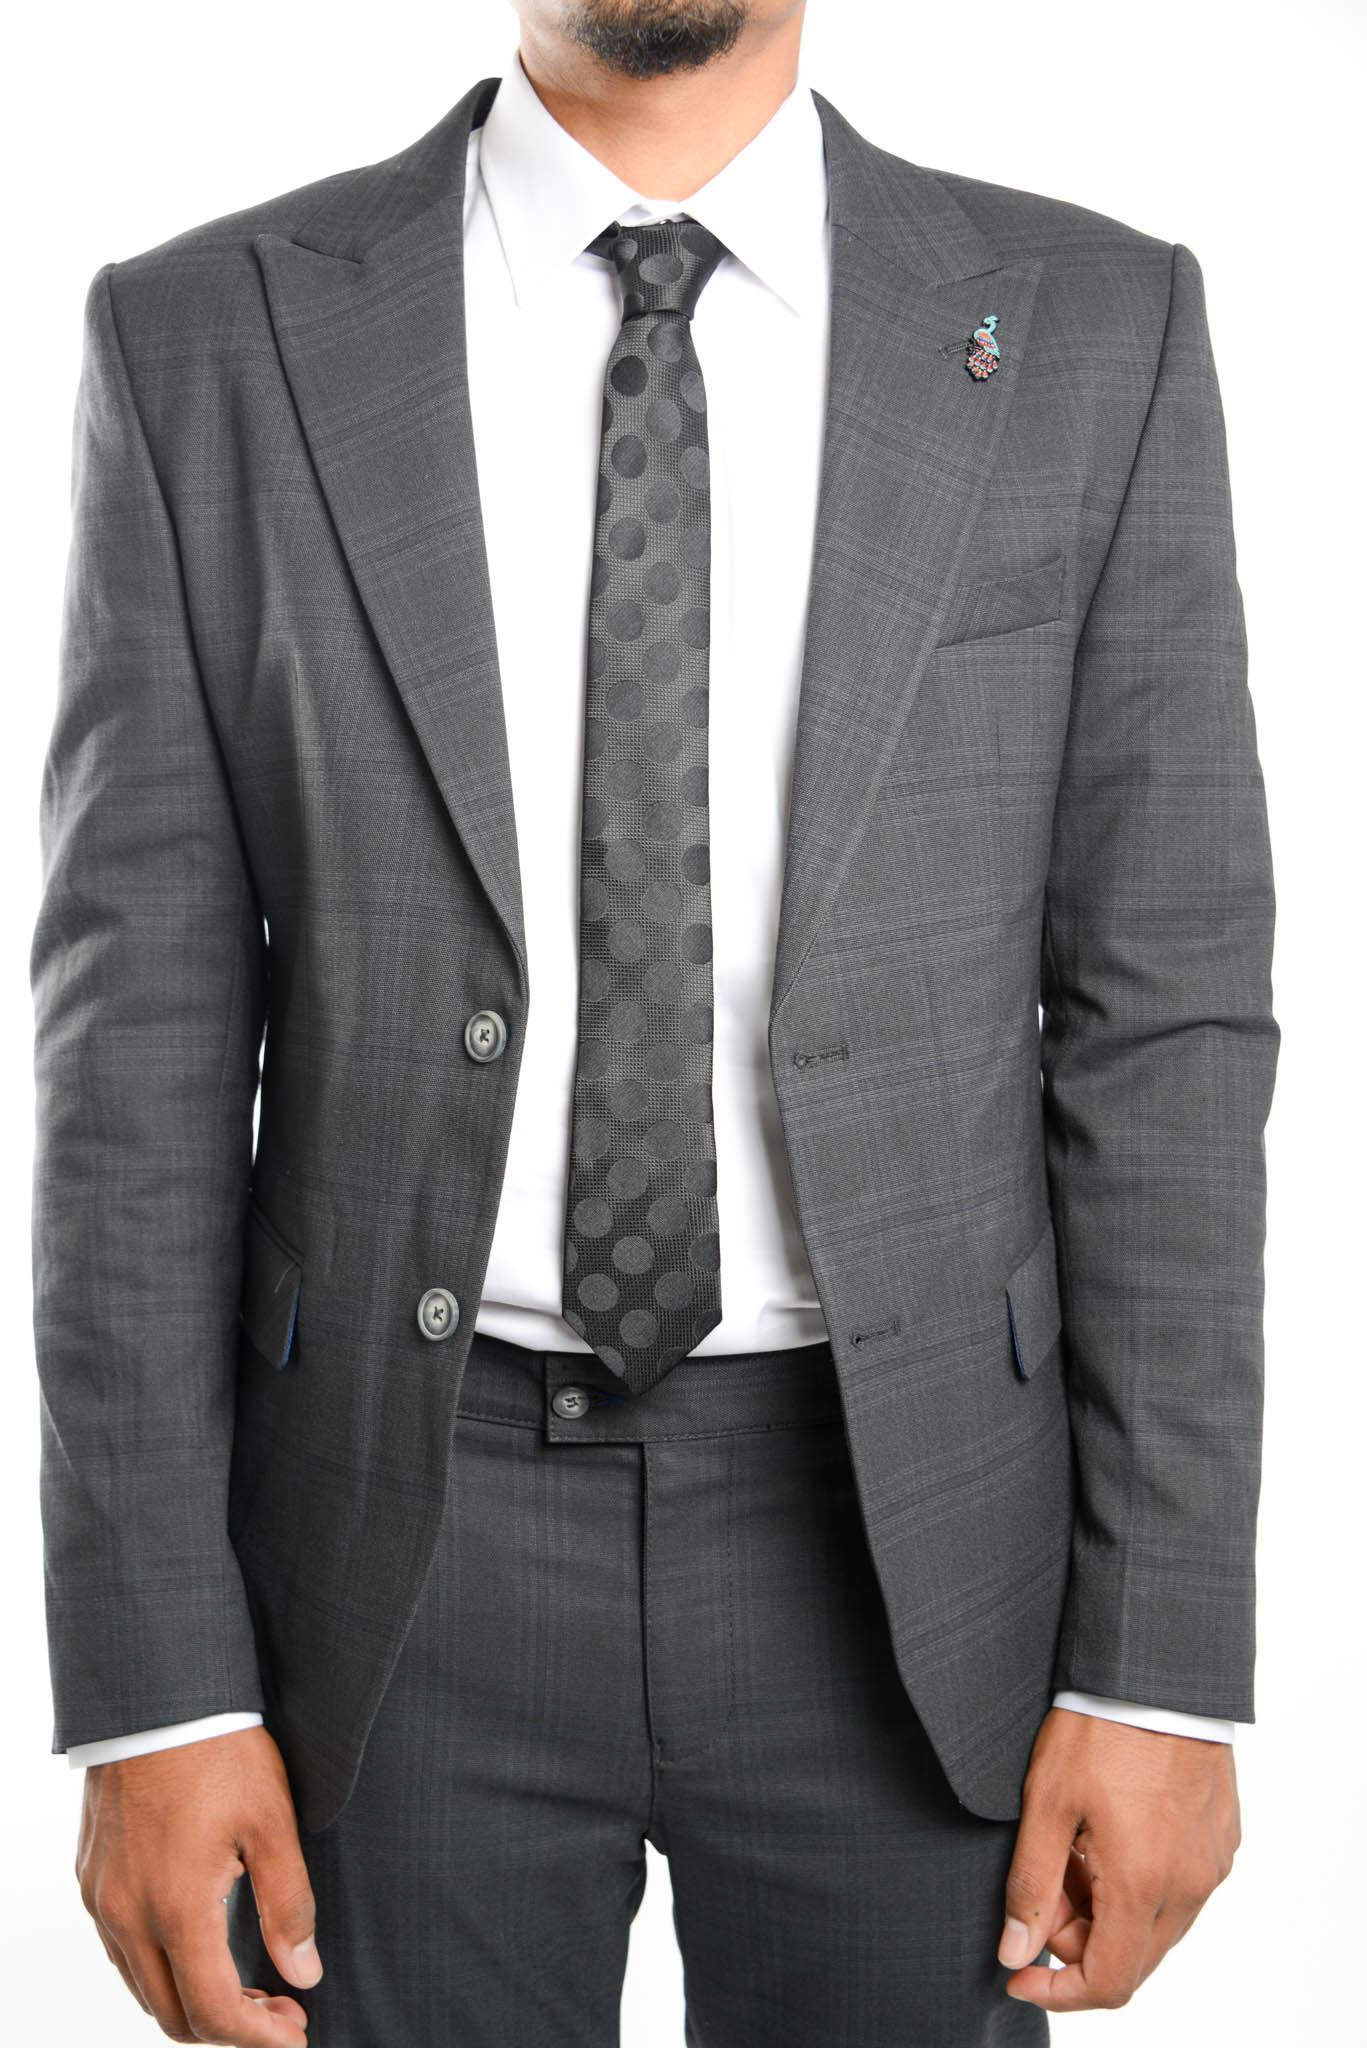 Euro Tonal Windowpane Blazer - Haight & Ashbury